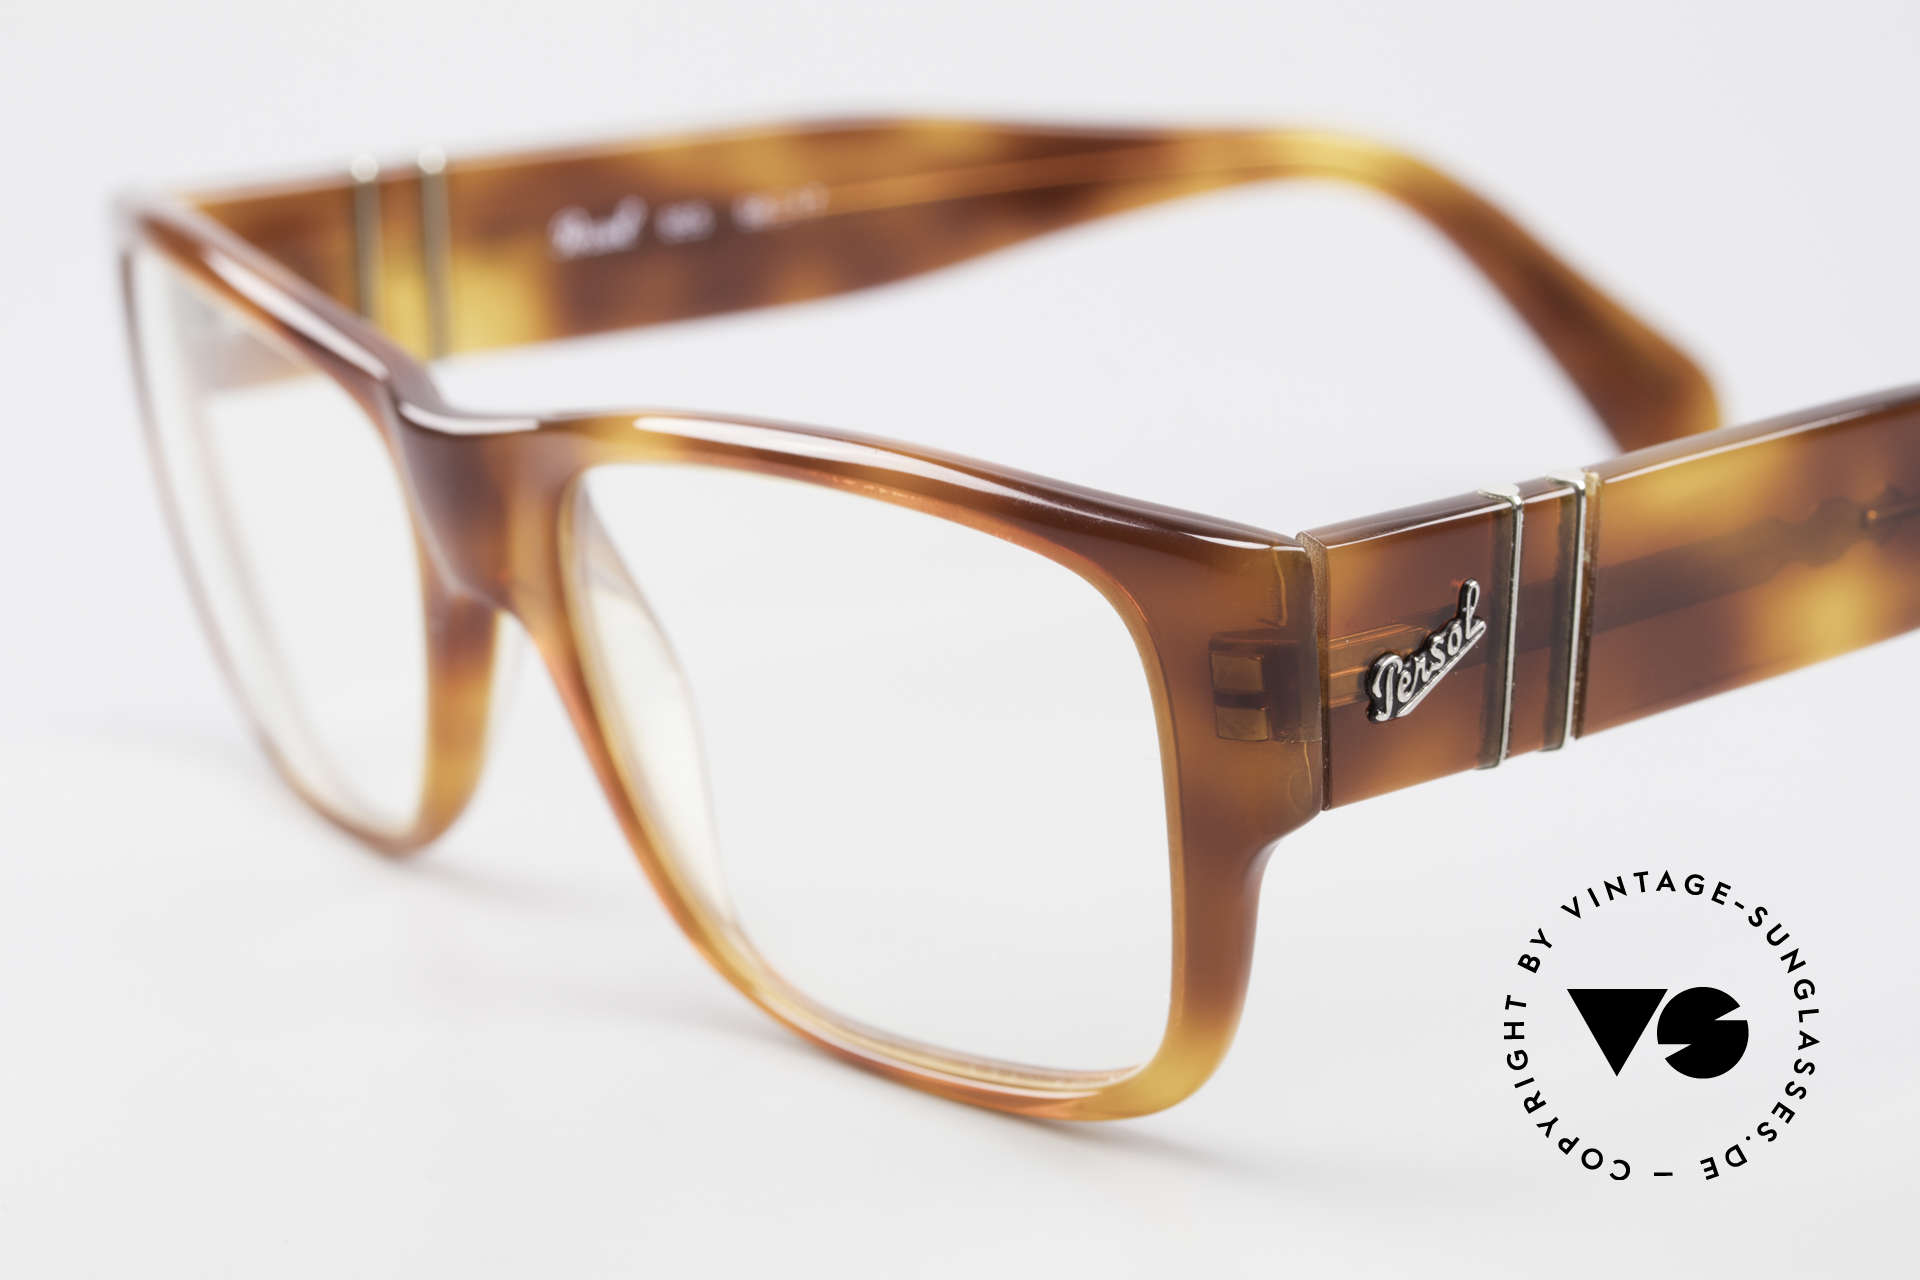 Persol 855 Striking Men's Vintage Frame, NO RETRO specs, but a 25 years old ORIGINAL, Made for Men